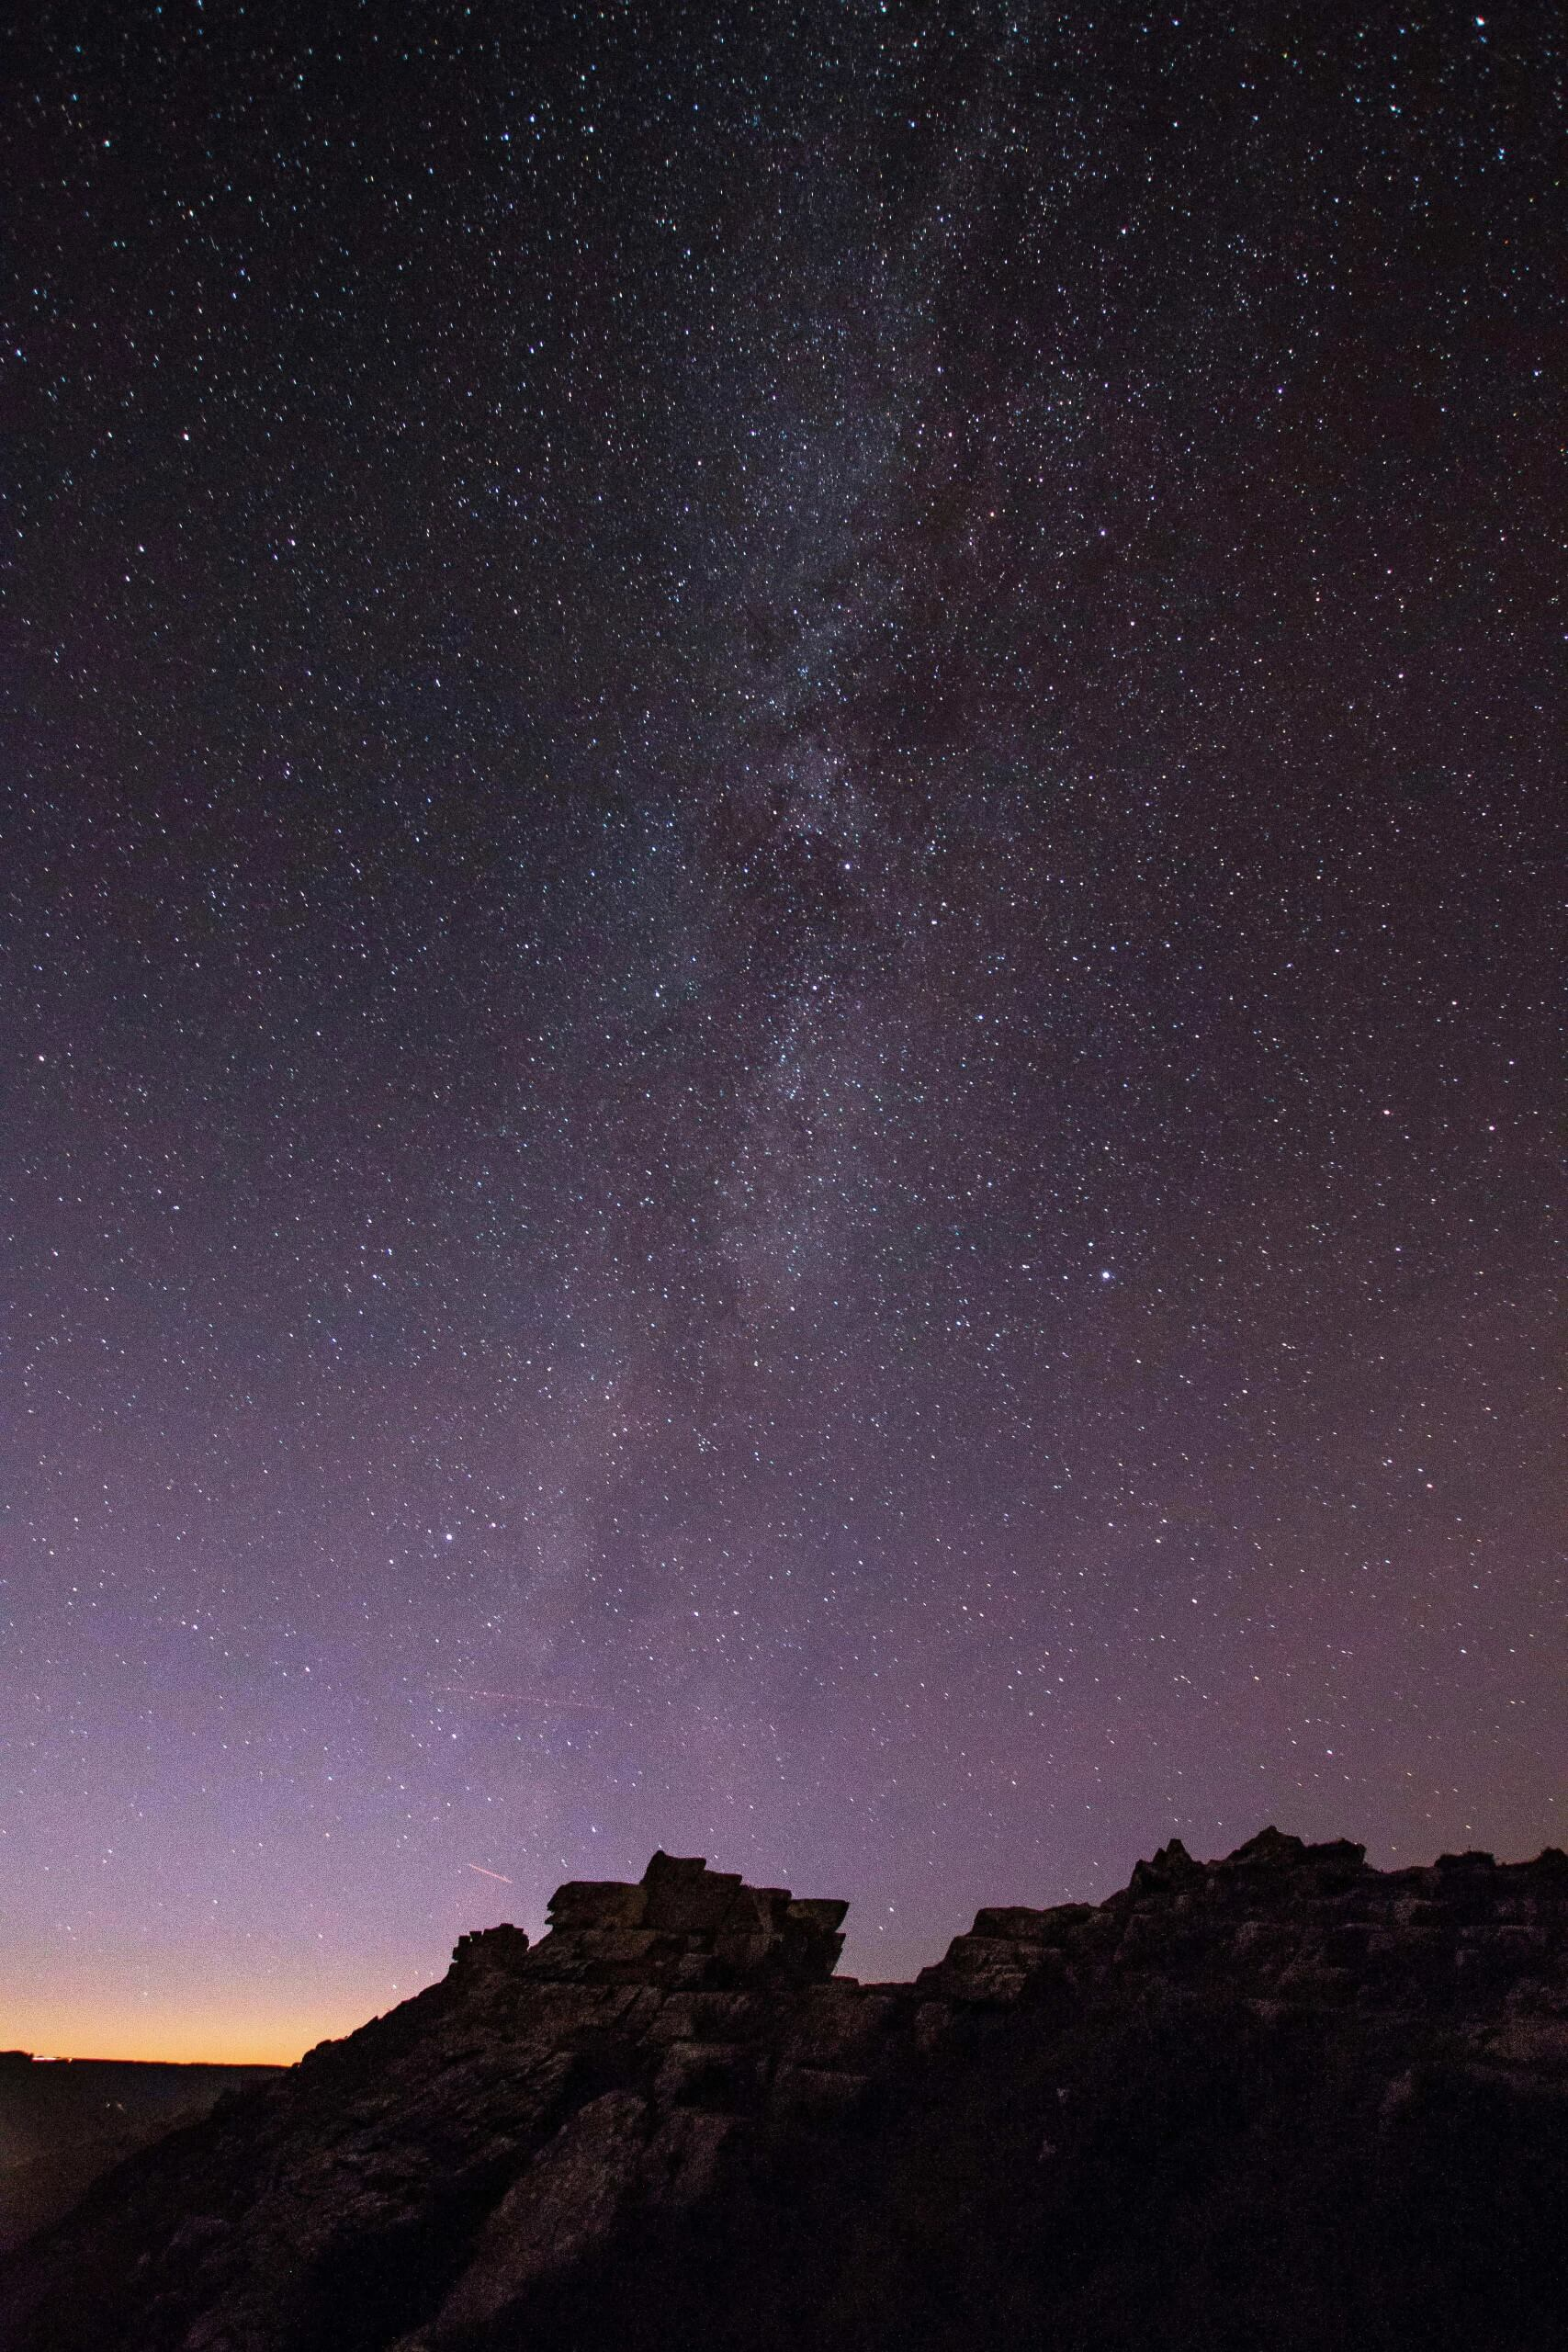 The Milky Way At The Valley of Rocks